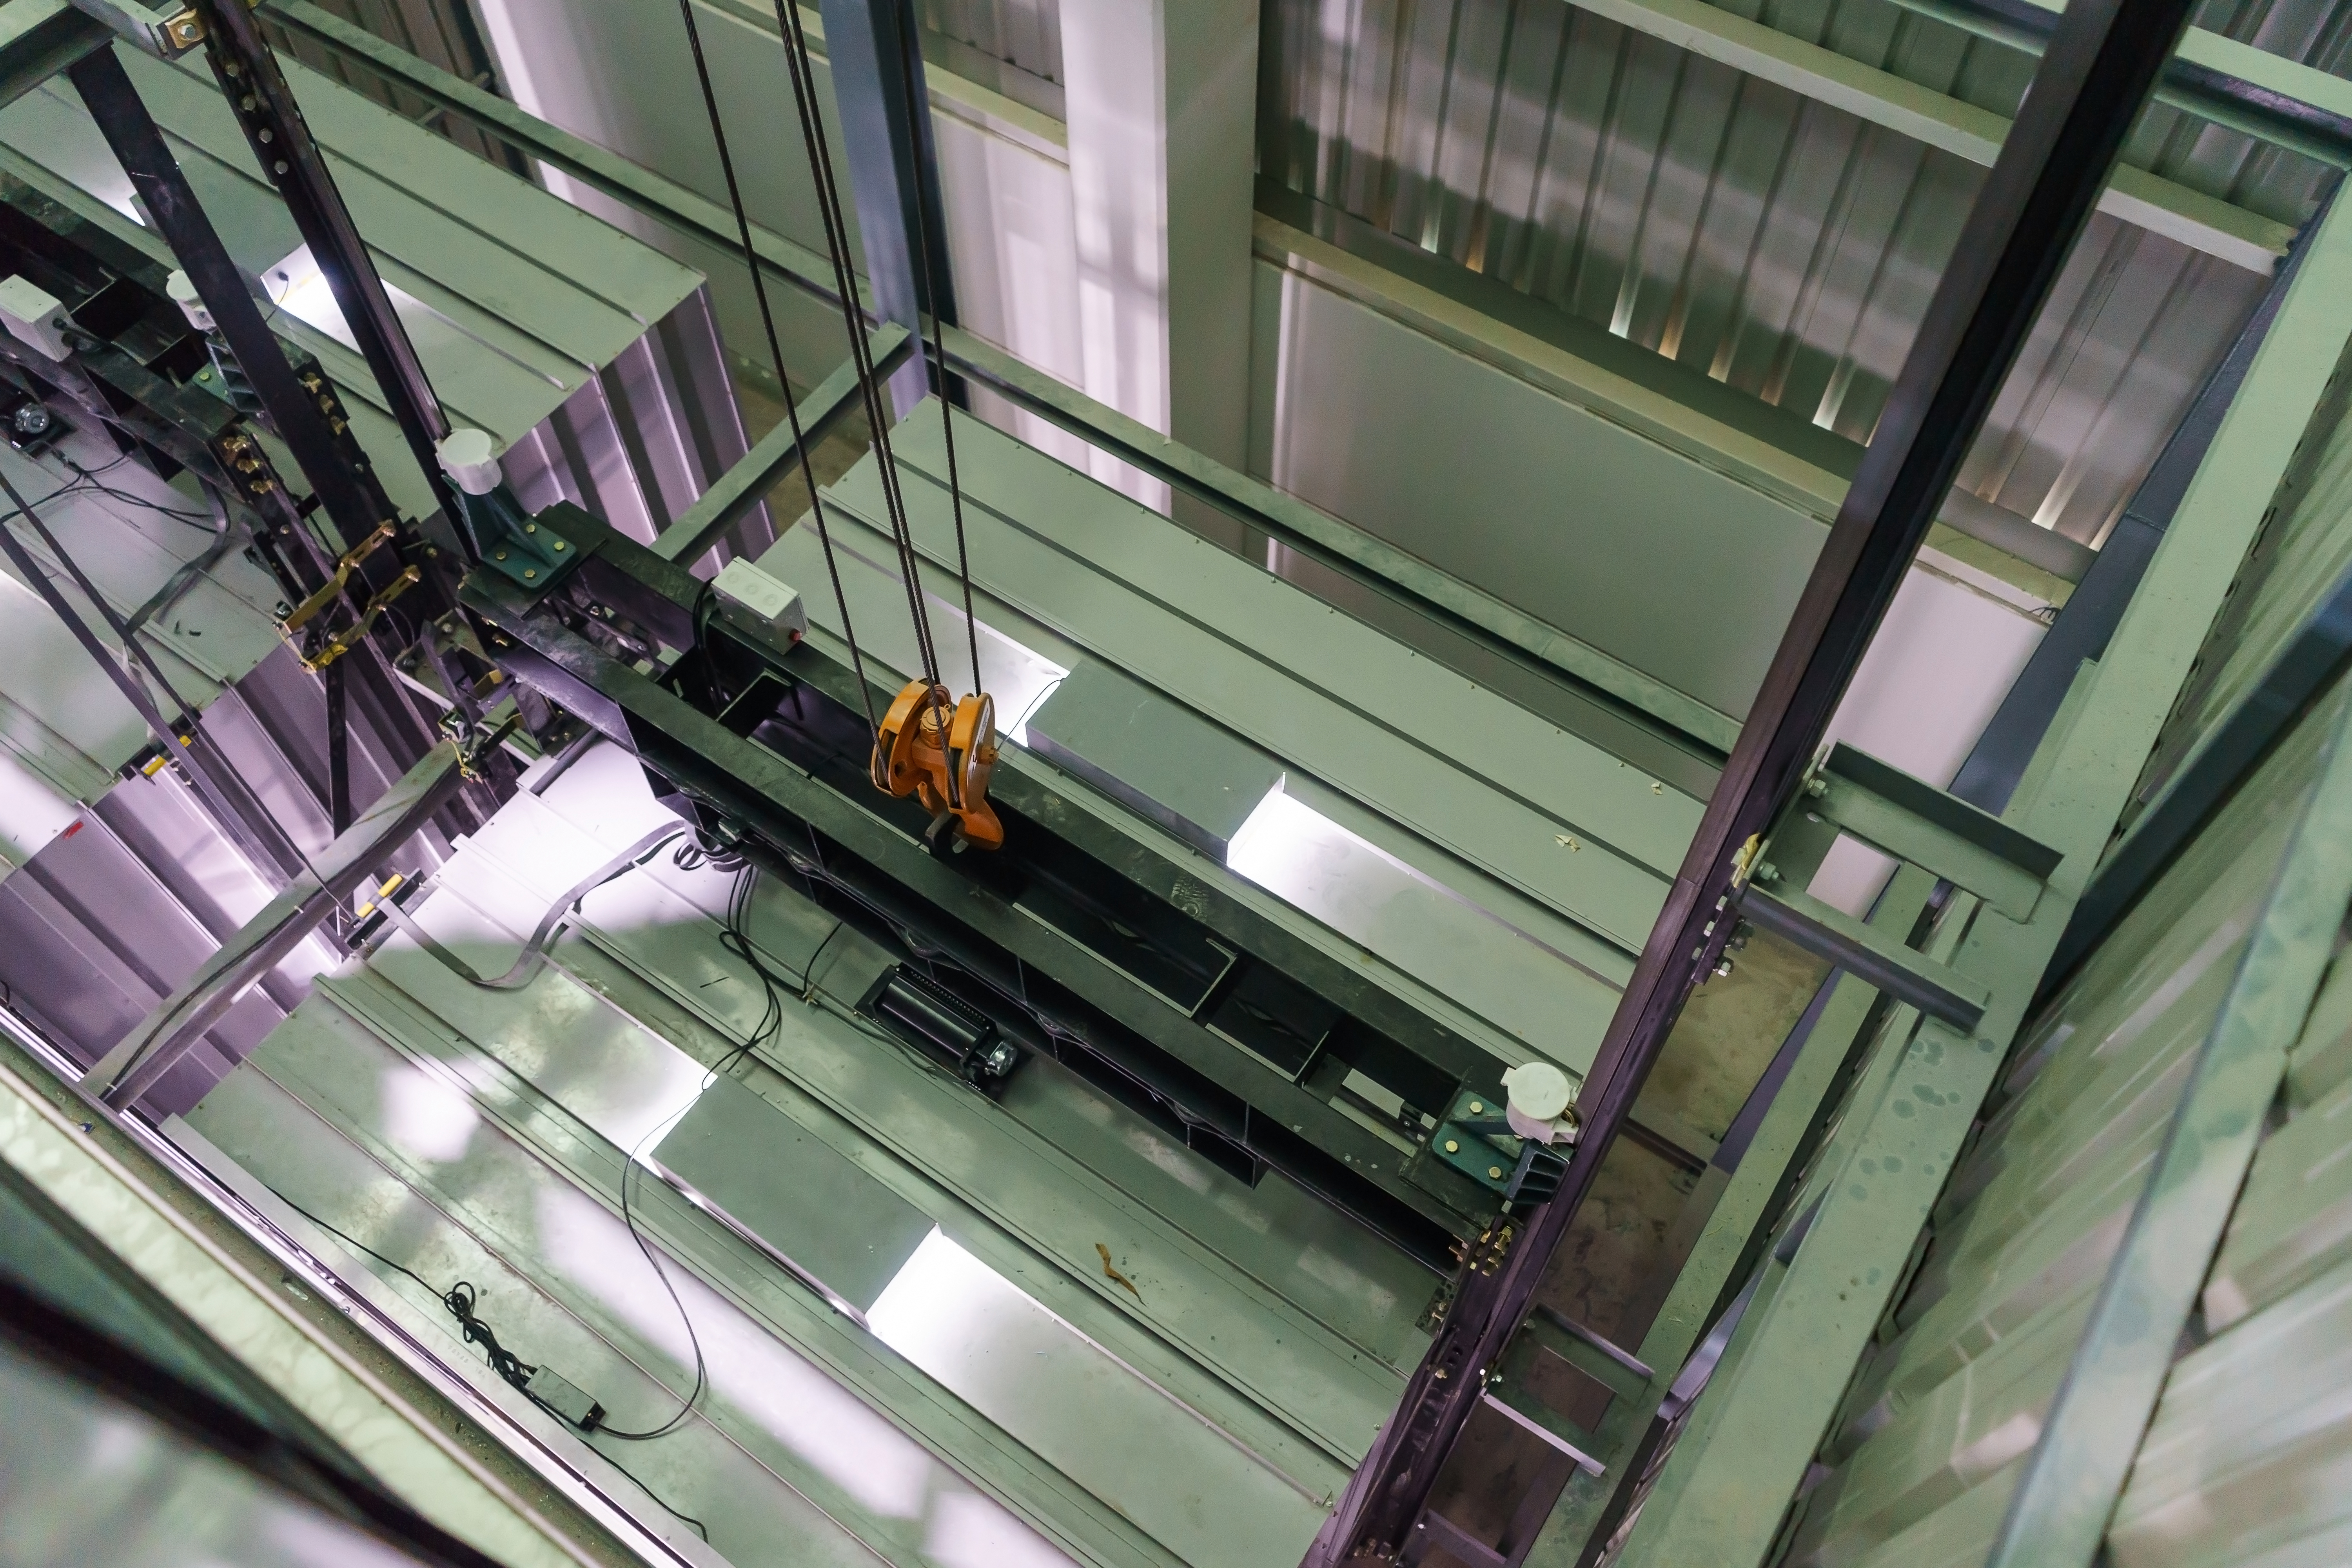 stock-photo-inside-of-roping-elevator-lift-box-built-in-high-building-show-strong-structure-use-for-752570059